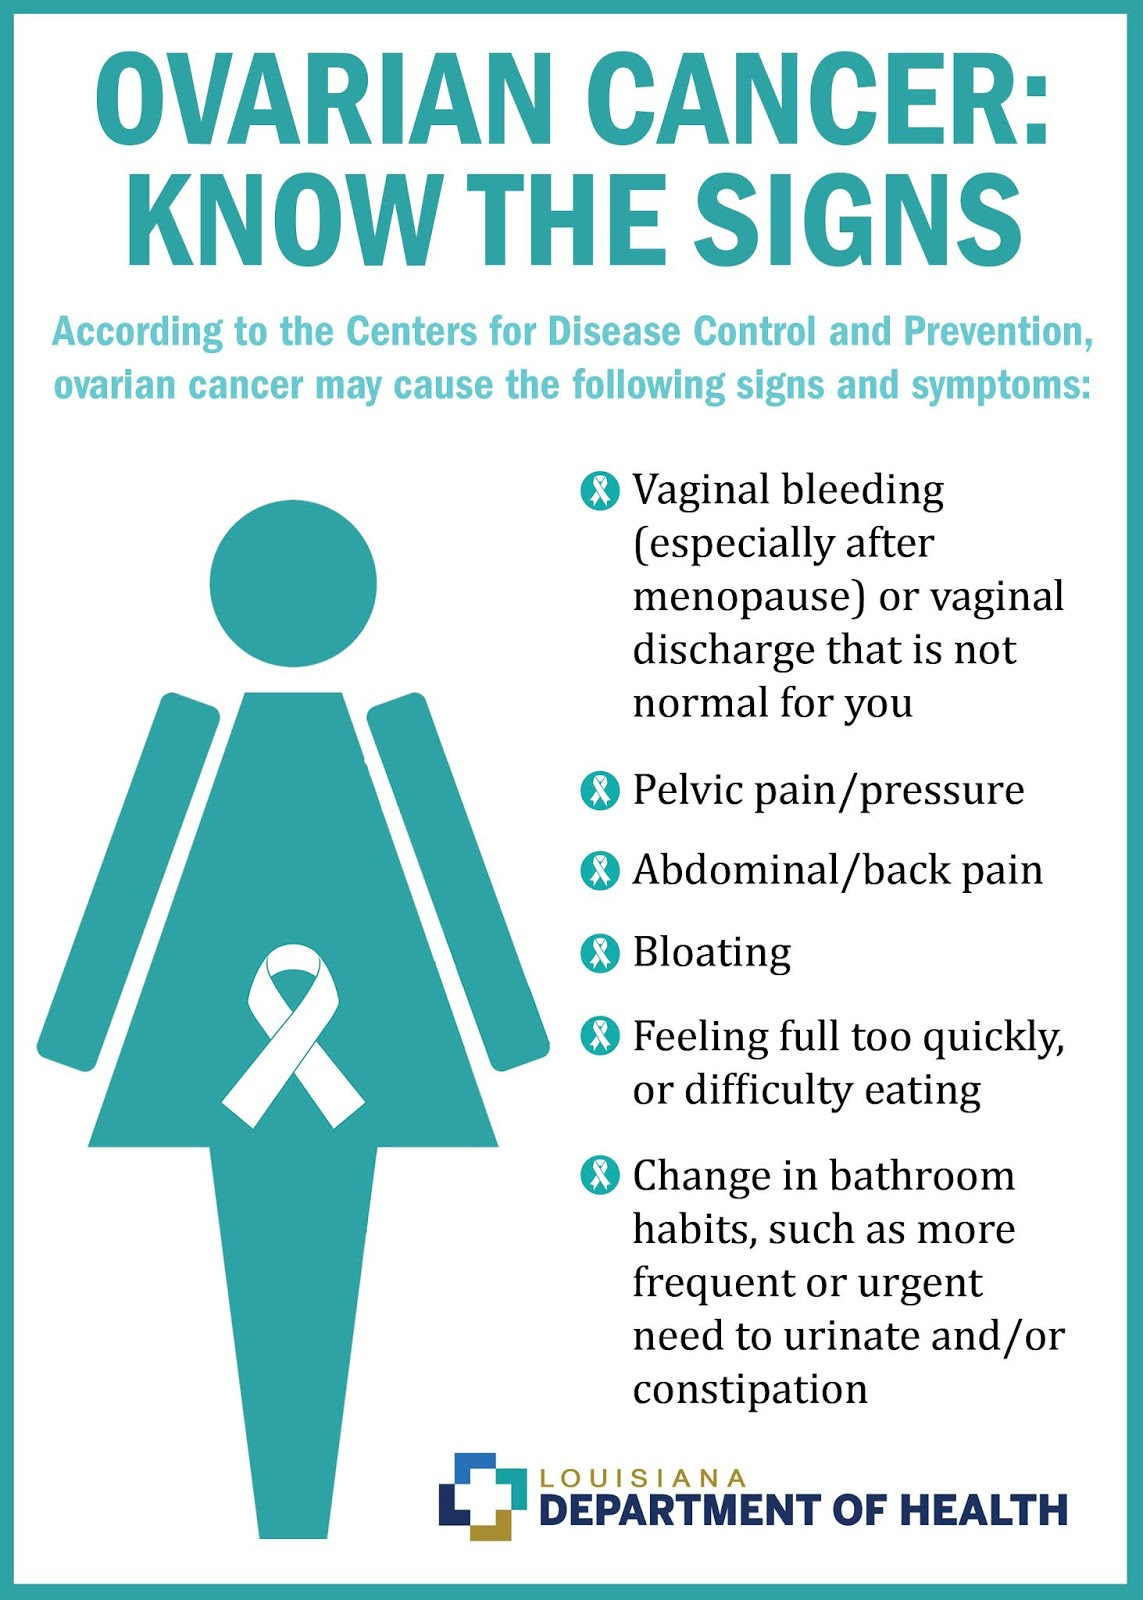 louisiana department of health  ovarian cancer awareness month  know the signs and symptoms